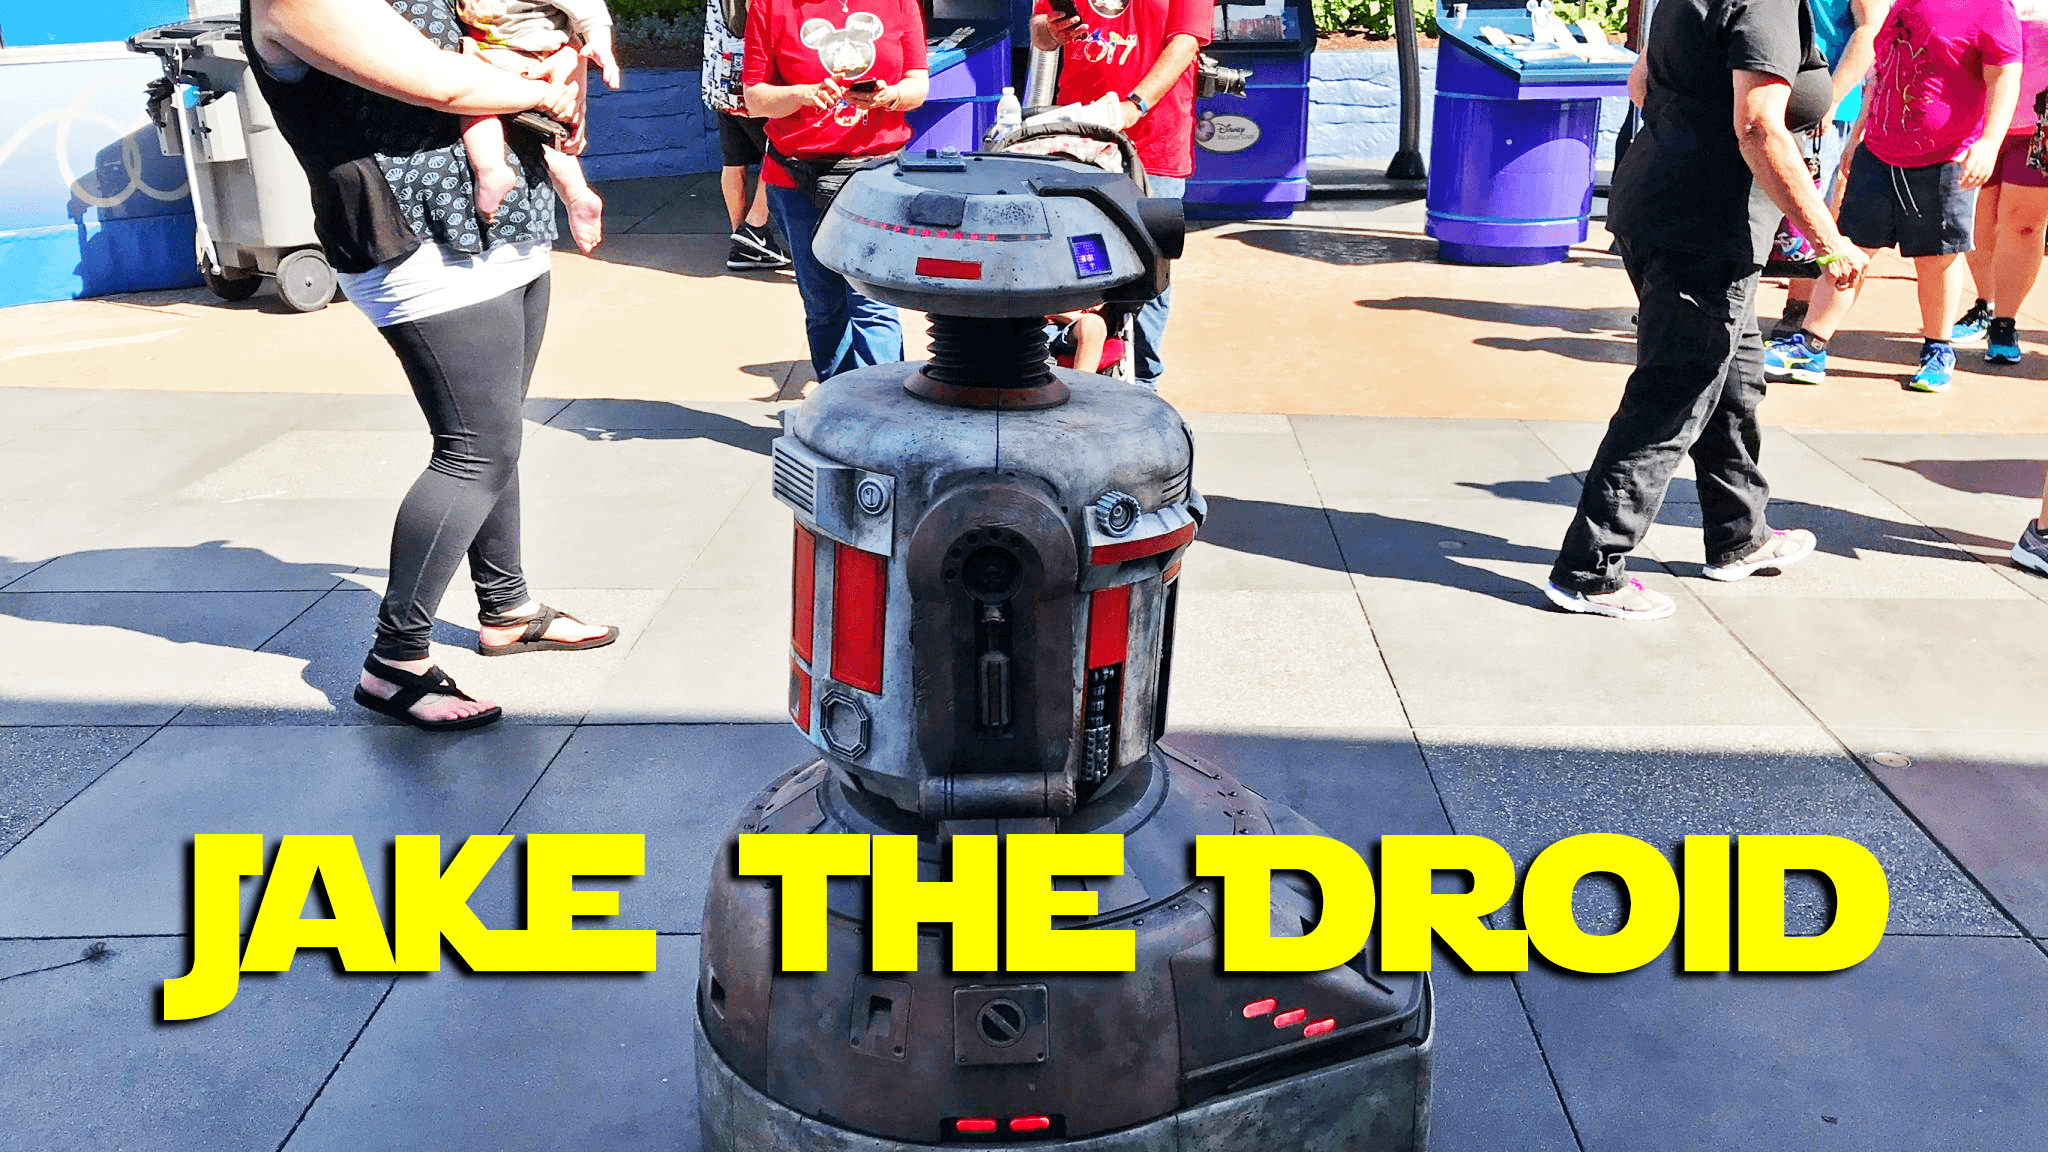 Jake the Droid at Disneyland